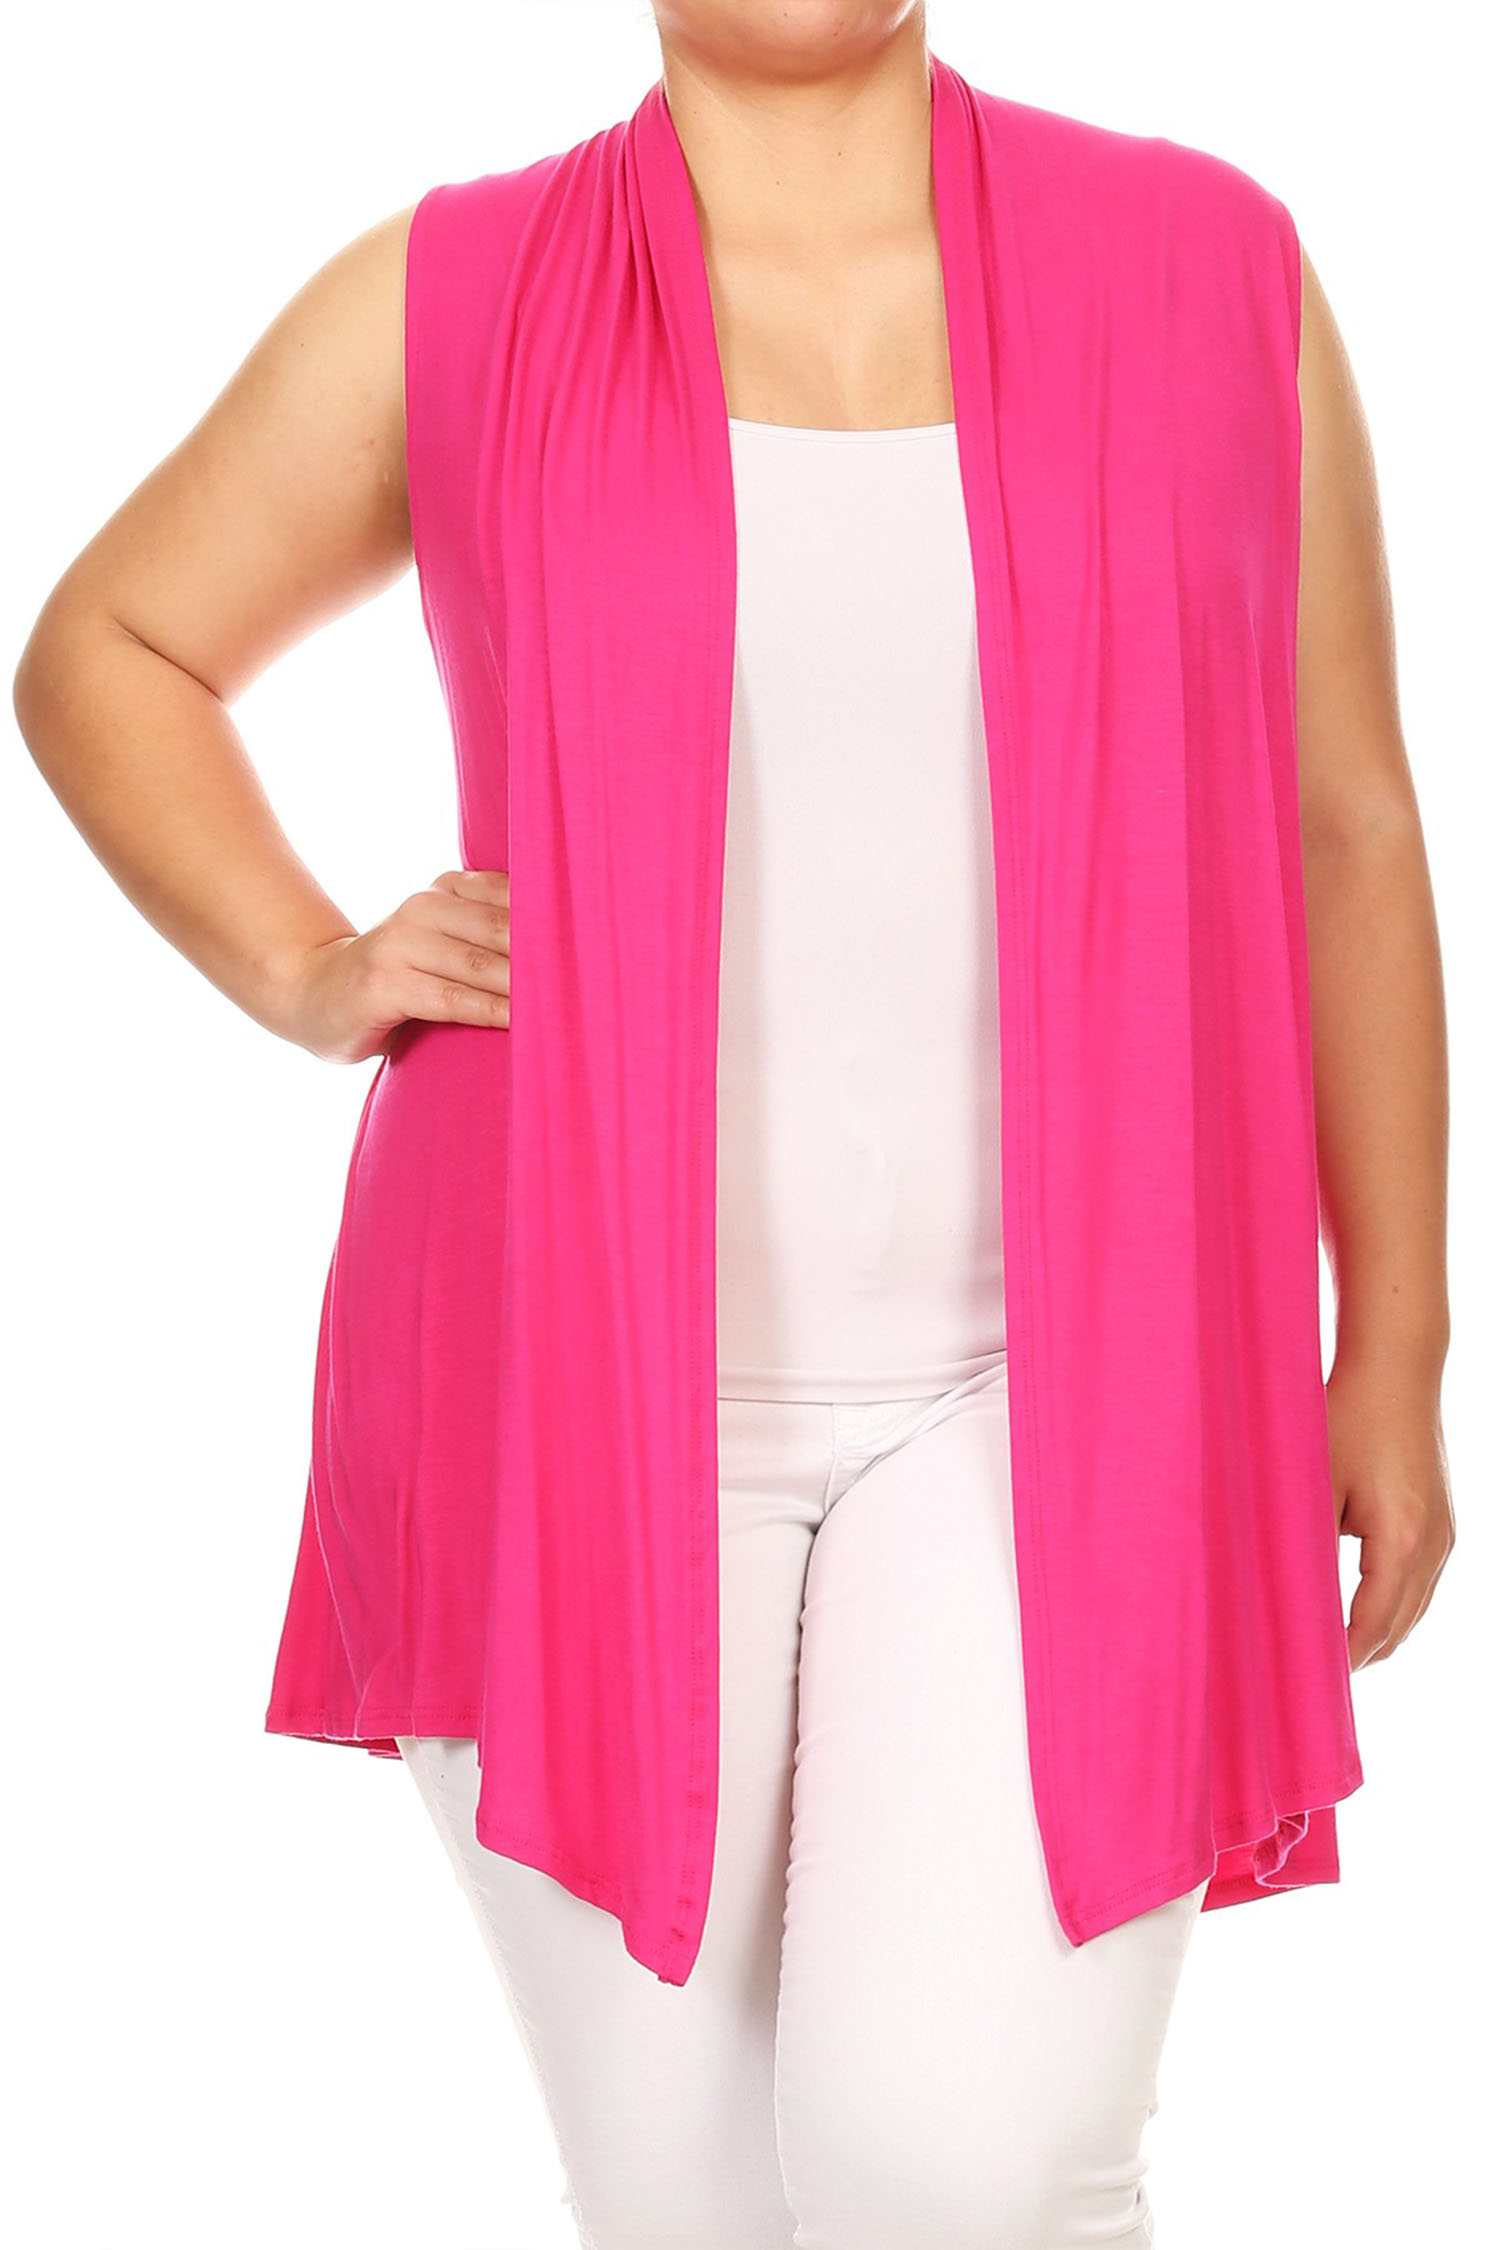 Women's Plus Size Solid Vest Cardigan